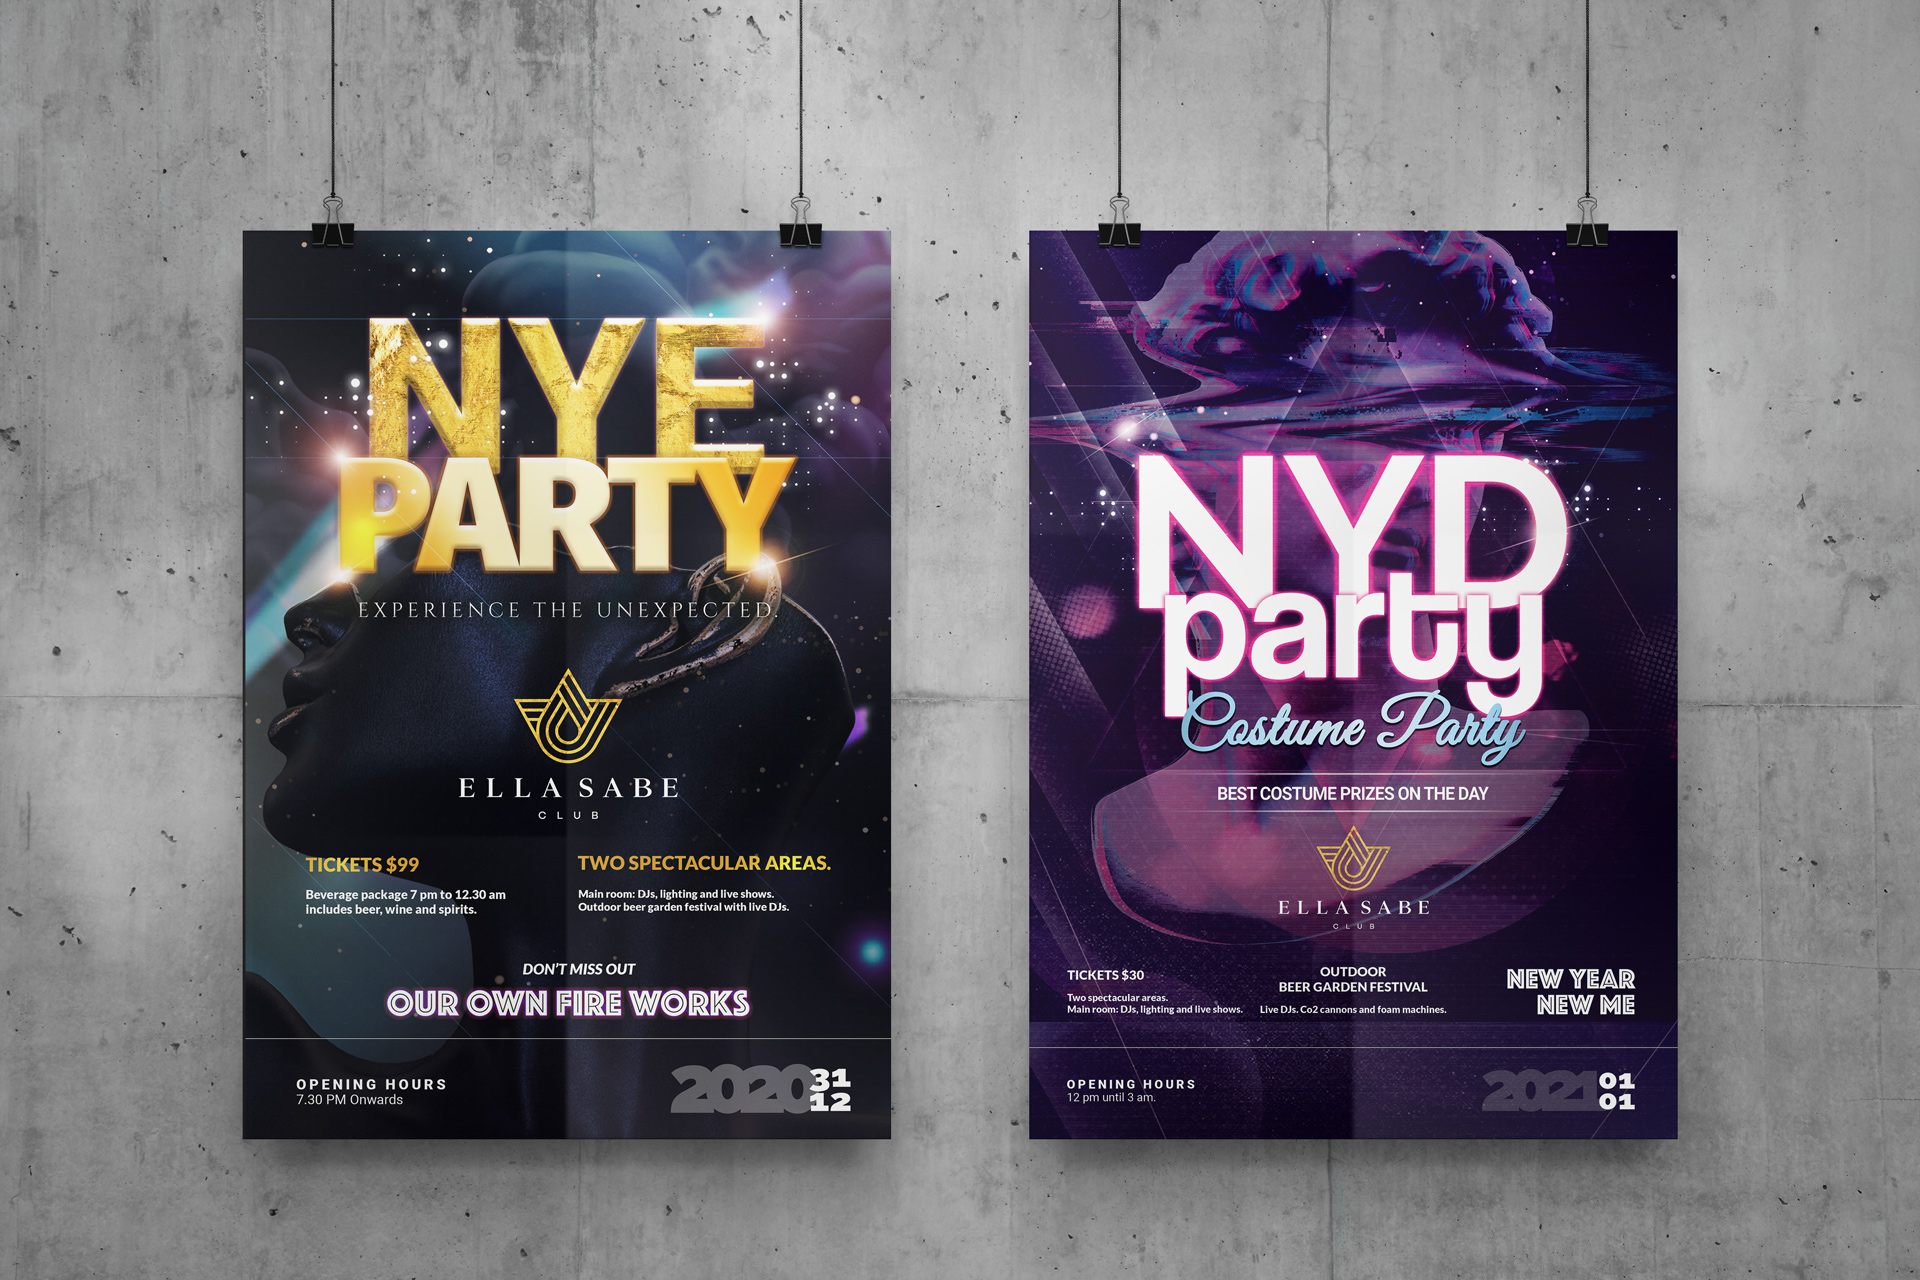 Poster designs created by Ronin Marketing's graphic designers to advertise Brisbane NYE event held by Ella Sabe.